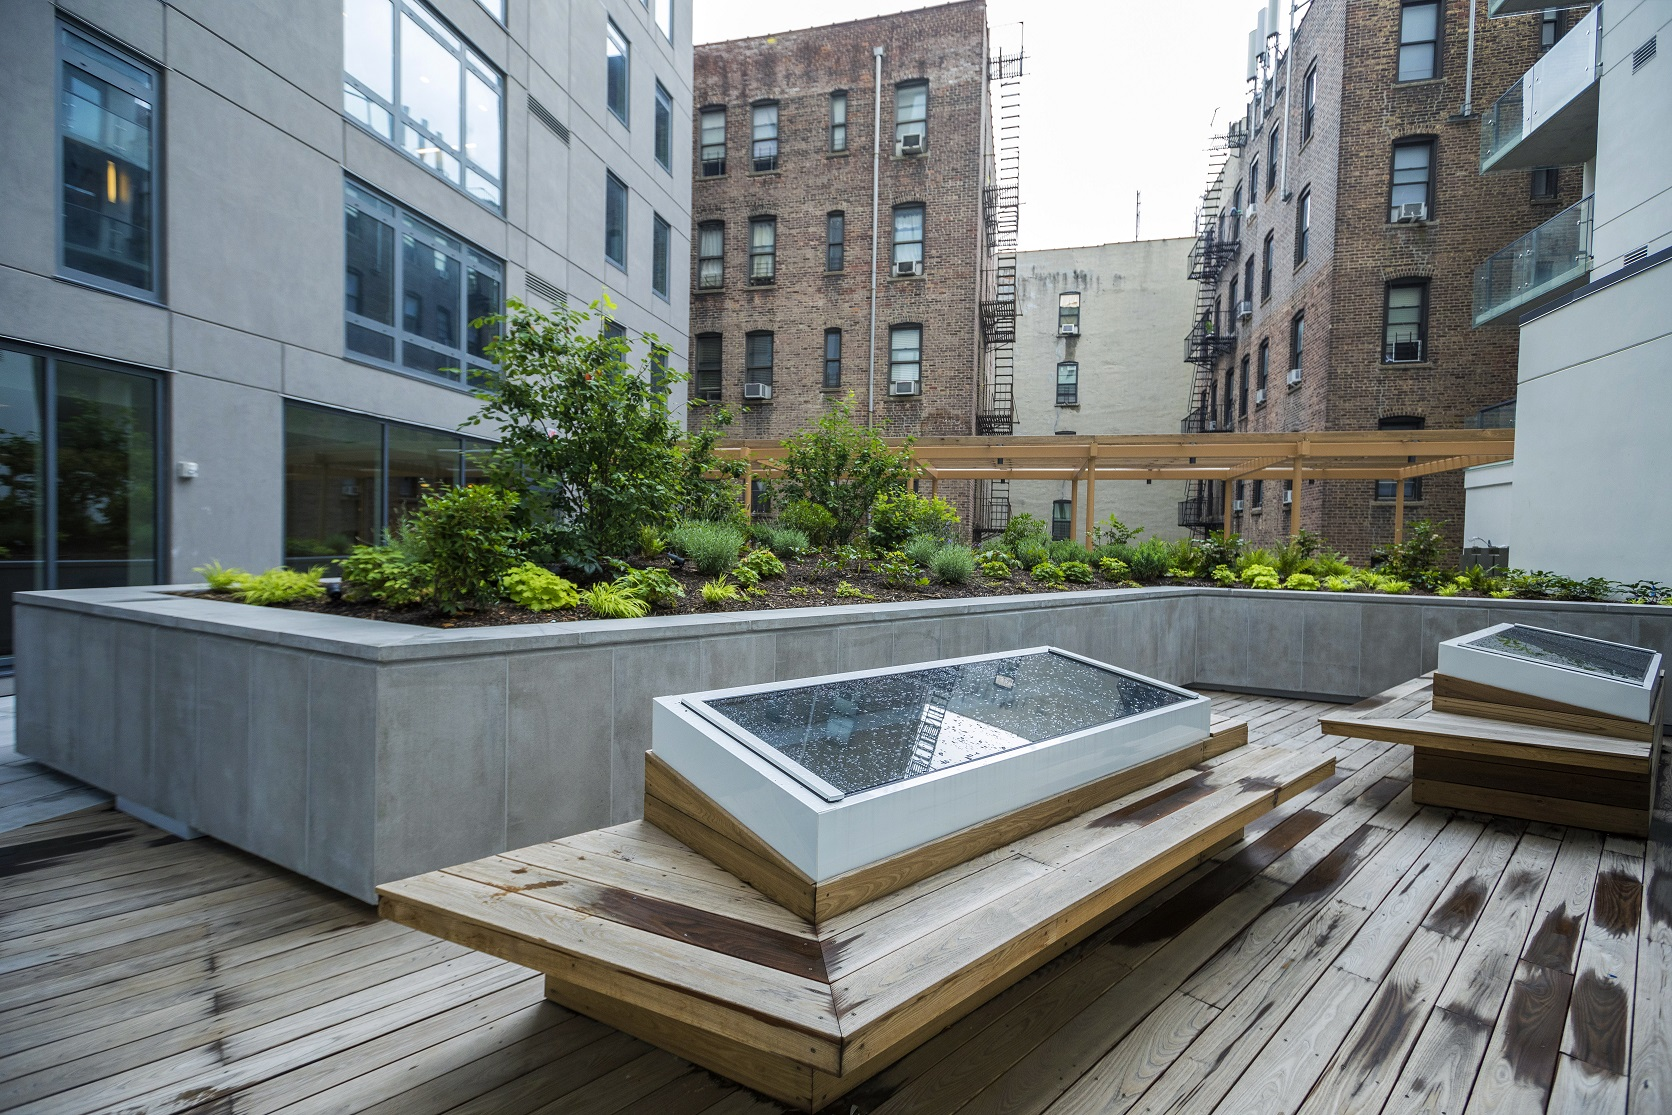 Expertly installed landscape elements create a beautiful, peaceful and sustainable amenity for the residents of this building